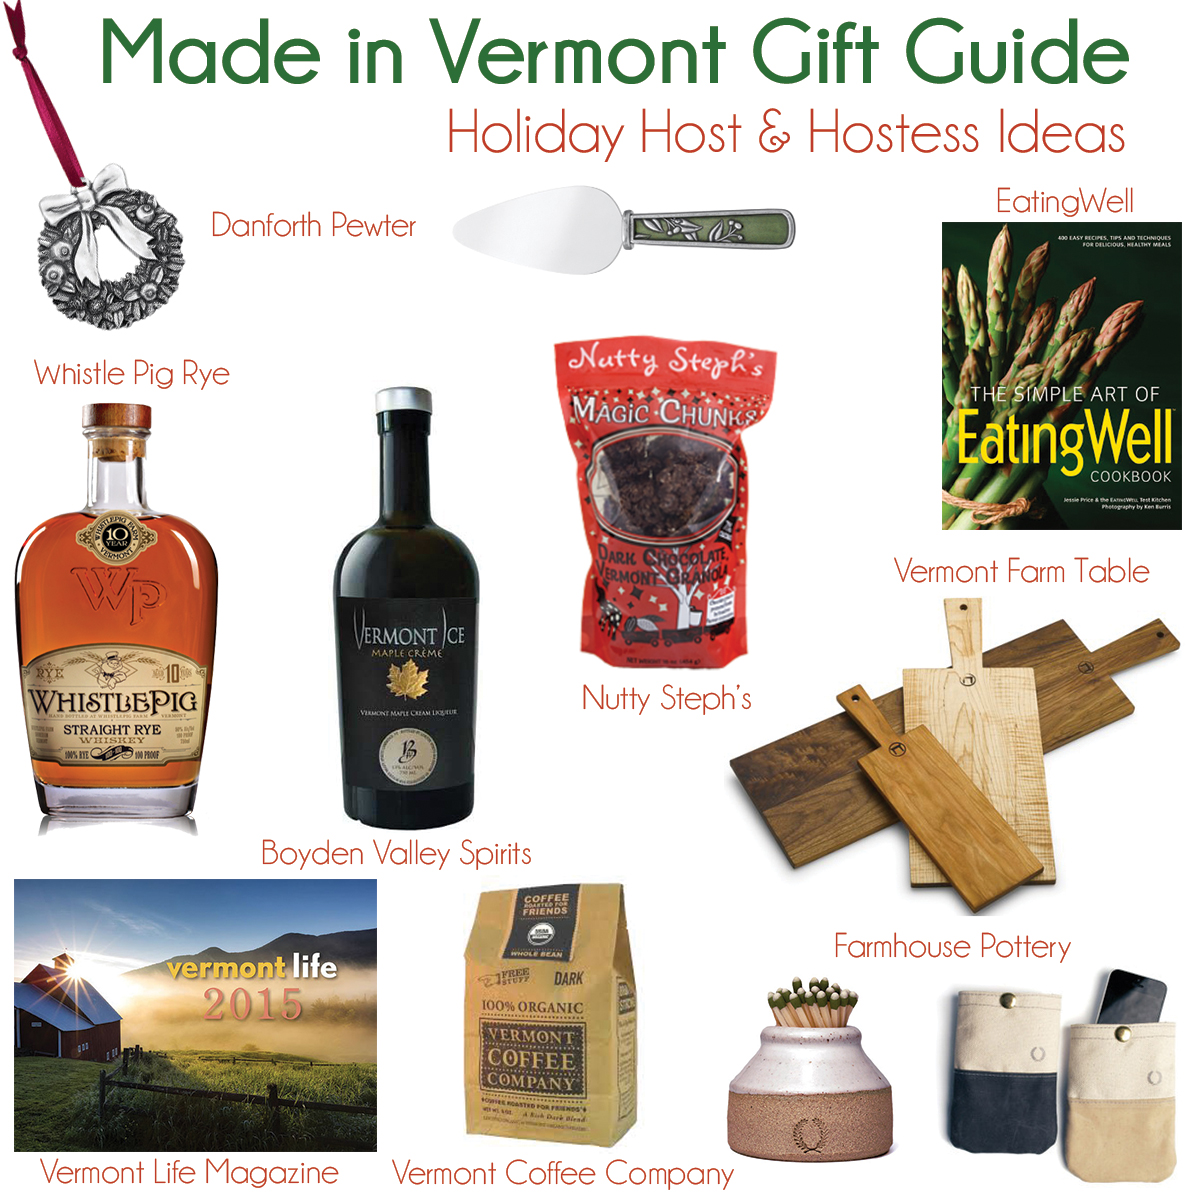 Vermont-Made Holiday Gift Guide: Host & Hostess Gifts - Travel Like ...